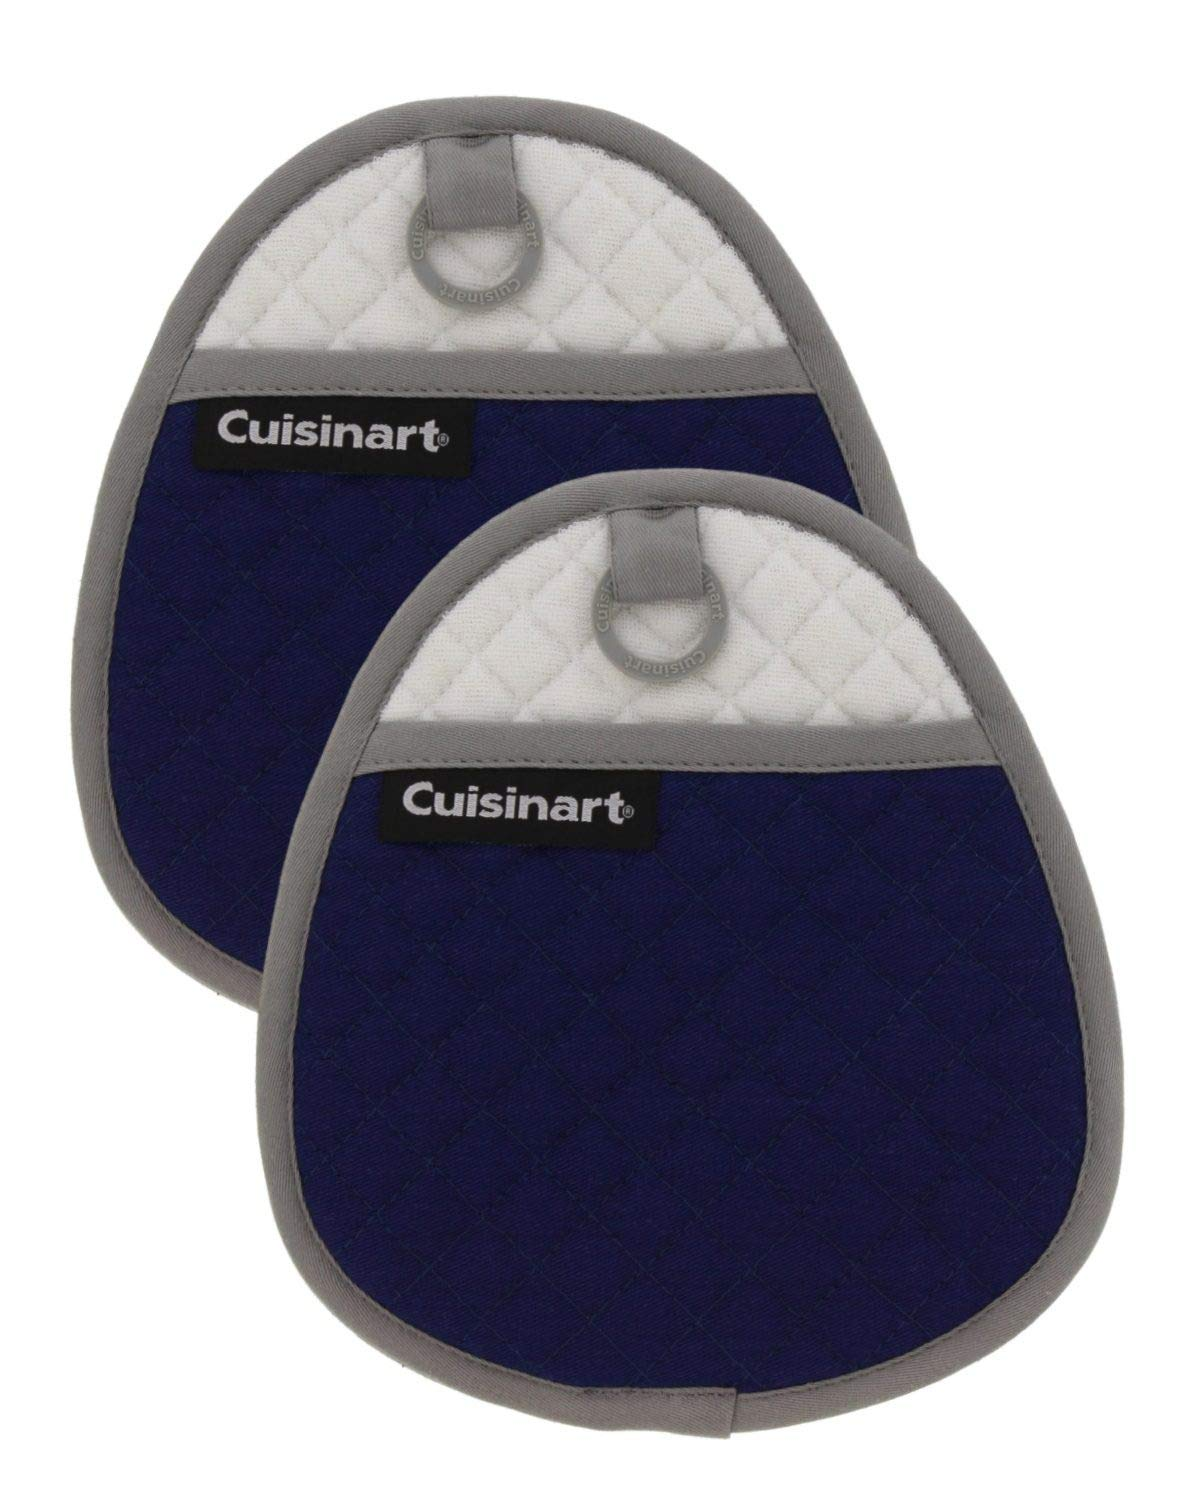 Cuisinart Quilted Silicone Potholders & Oven Mitts - Heat Resistant up to 500° F, Handle Hot Oven/Cooking Items Safely - Soft Insulated Pockets, Non-Slip Grip w/Hanging Loop, Navy Aura- 2pk